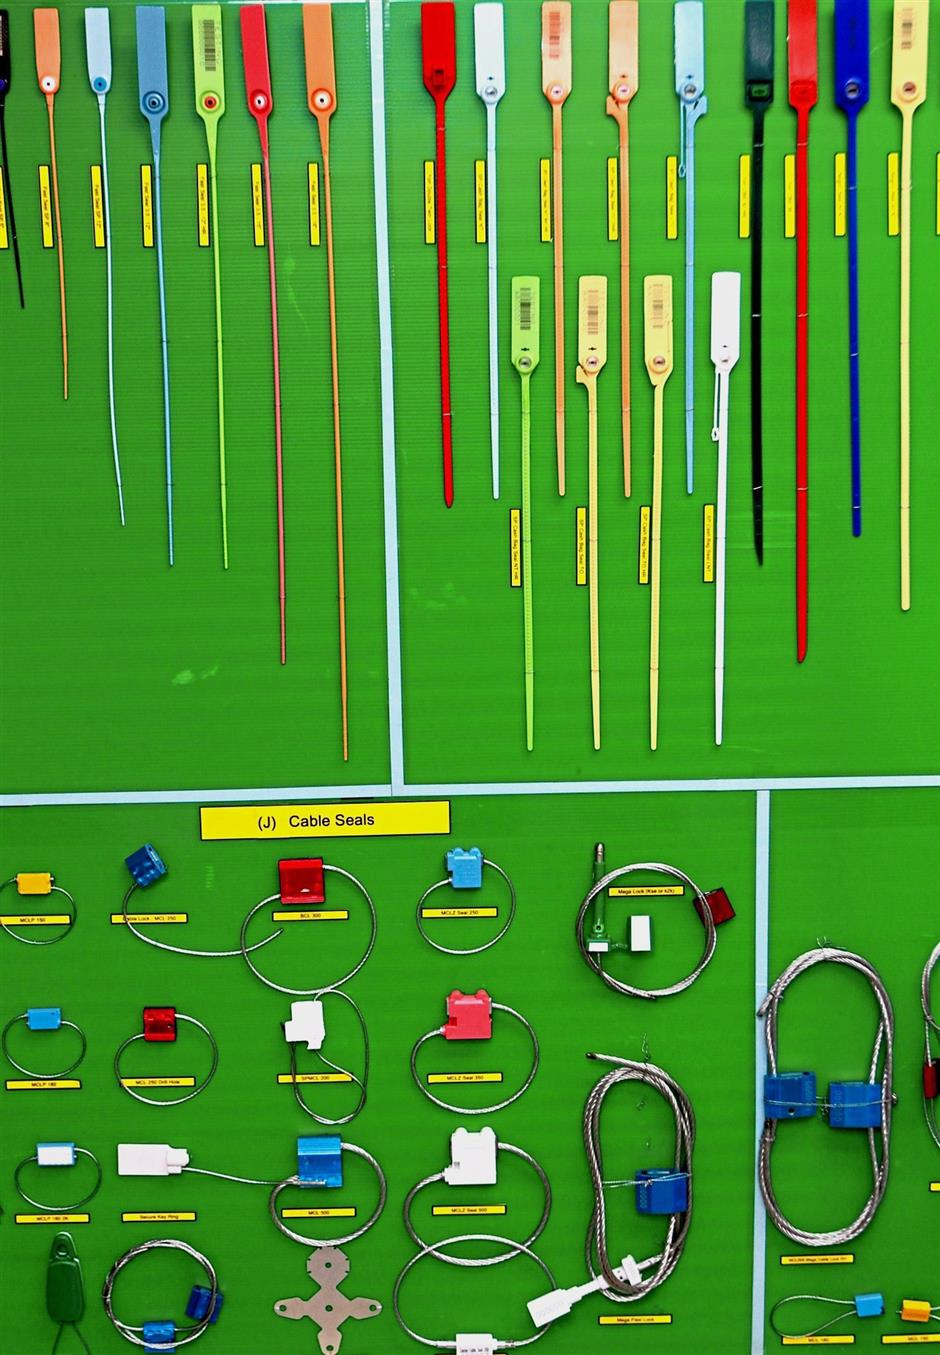 The company produces a variety of seals, including bolt, cable and plastic padlock seals.